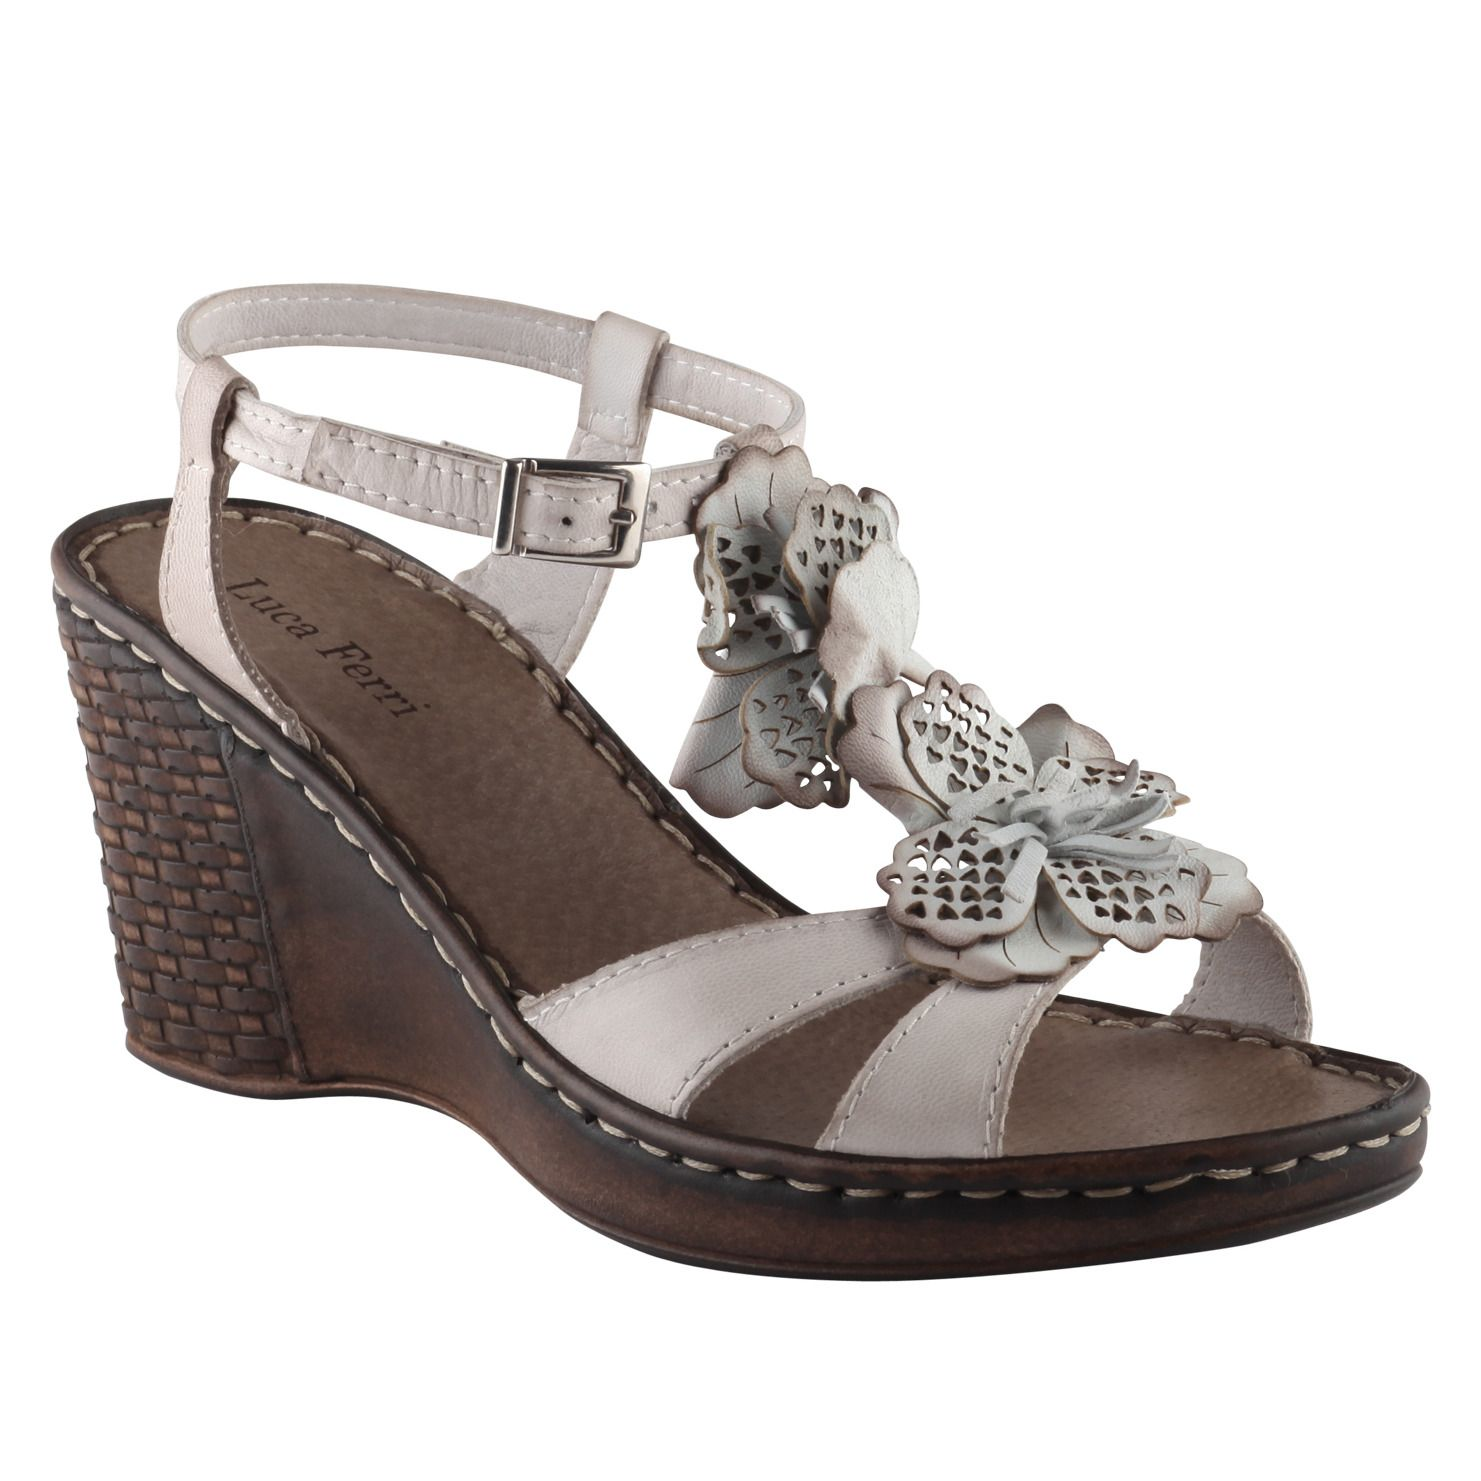 women's wedges sandals for sale at GLOBO Shoes